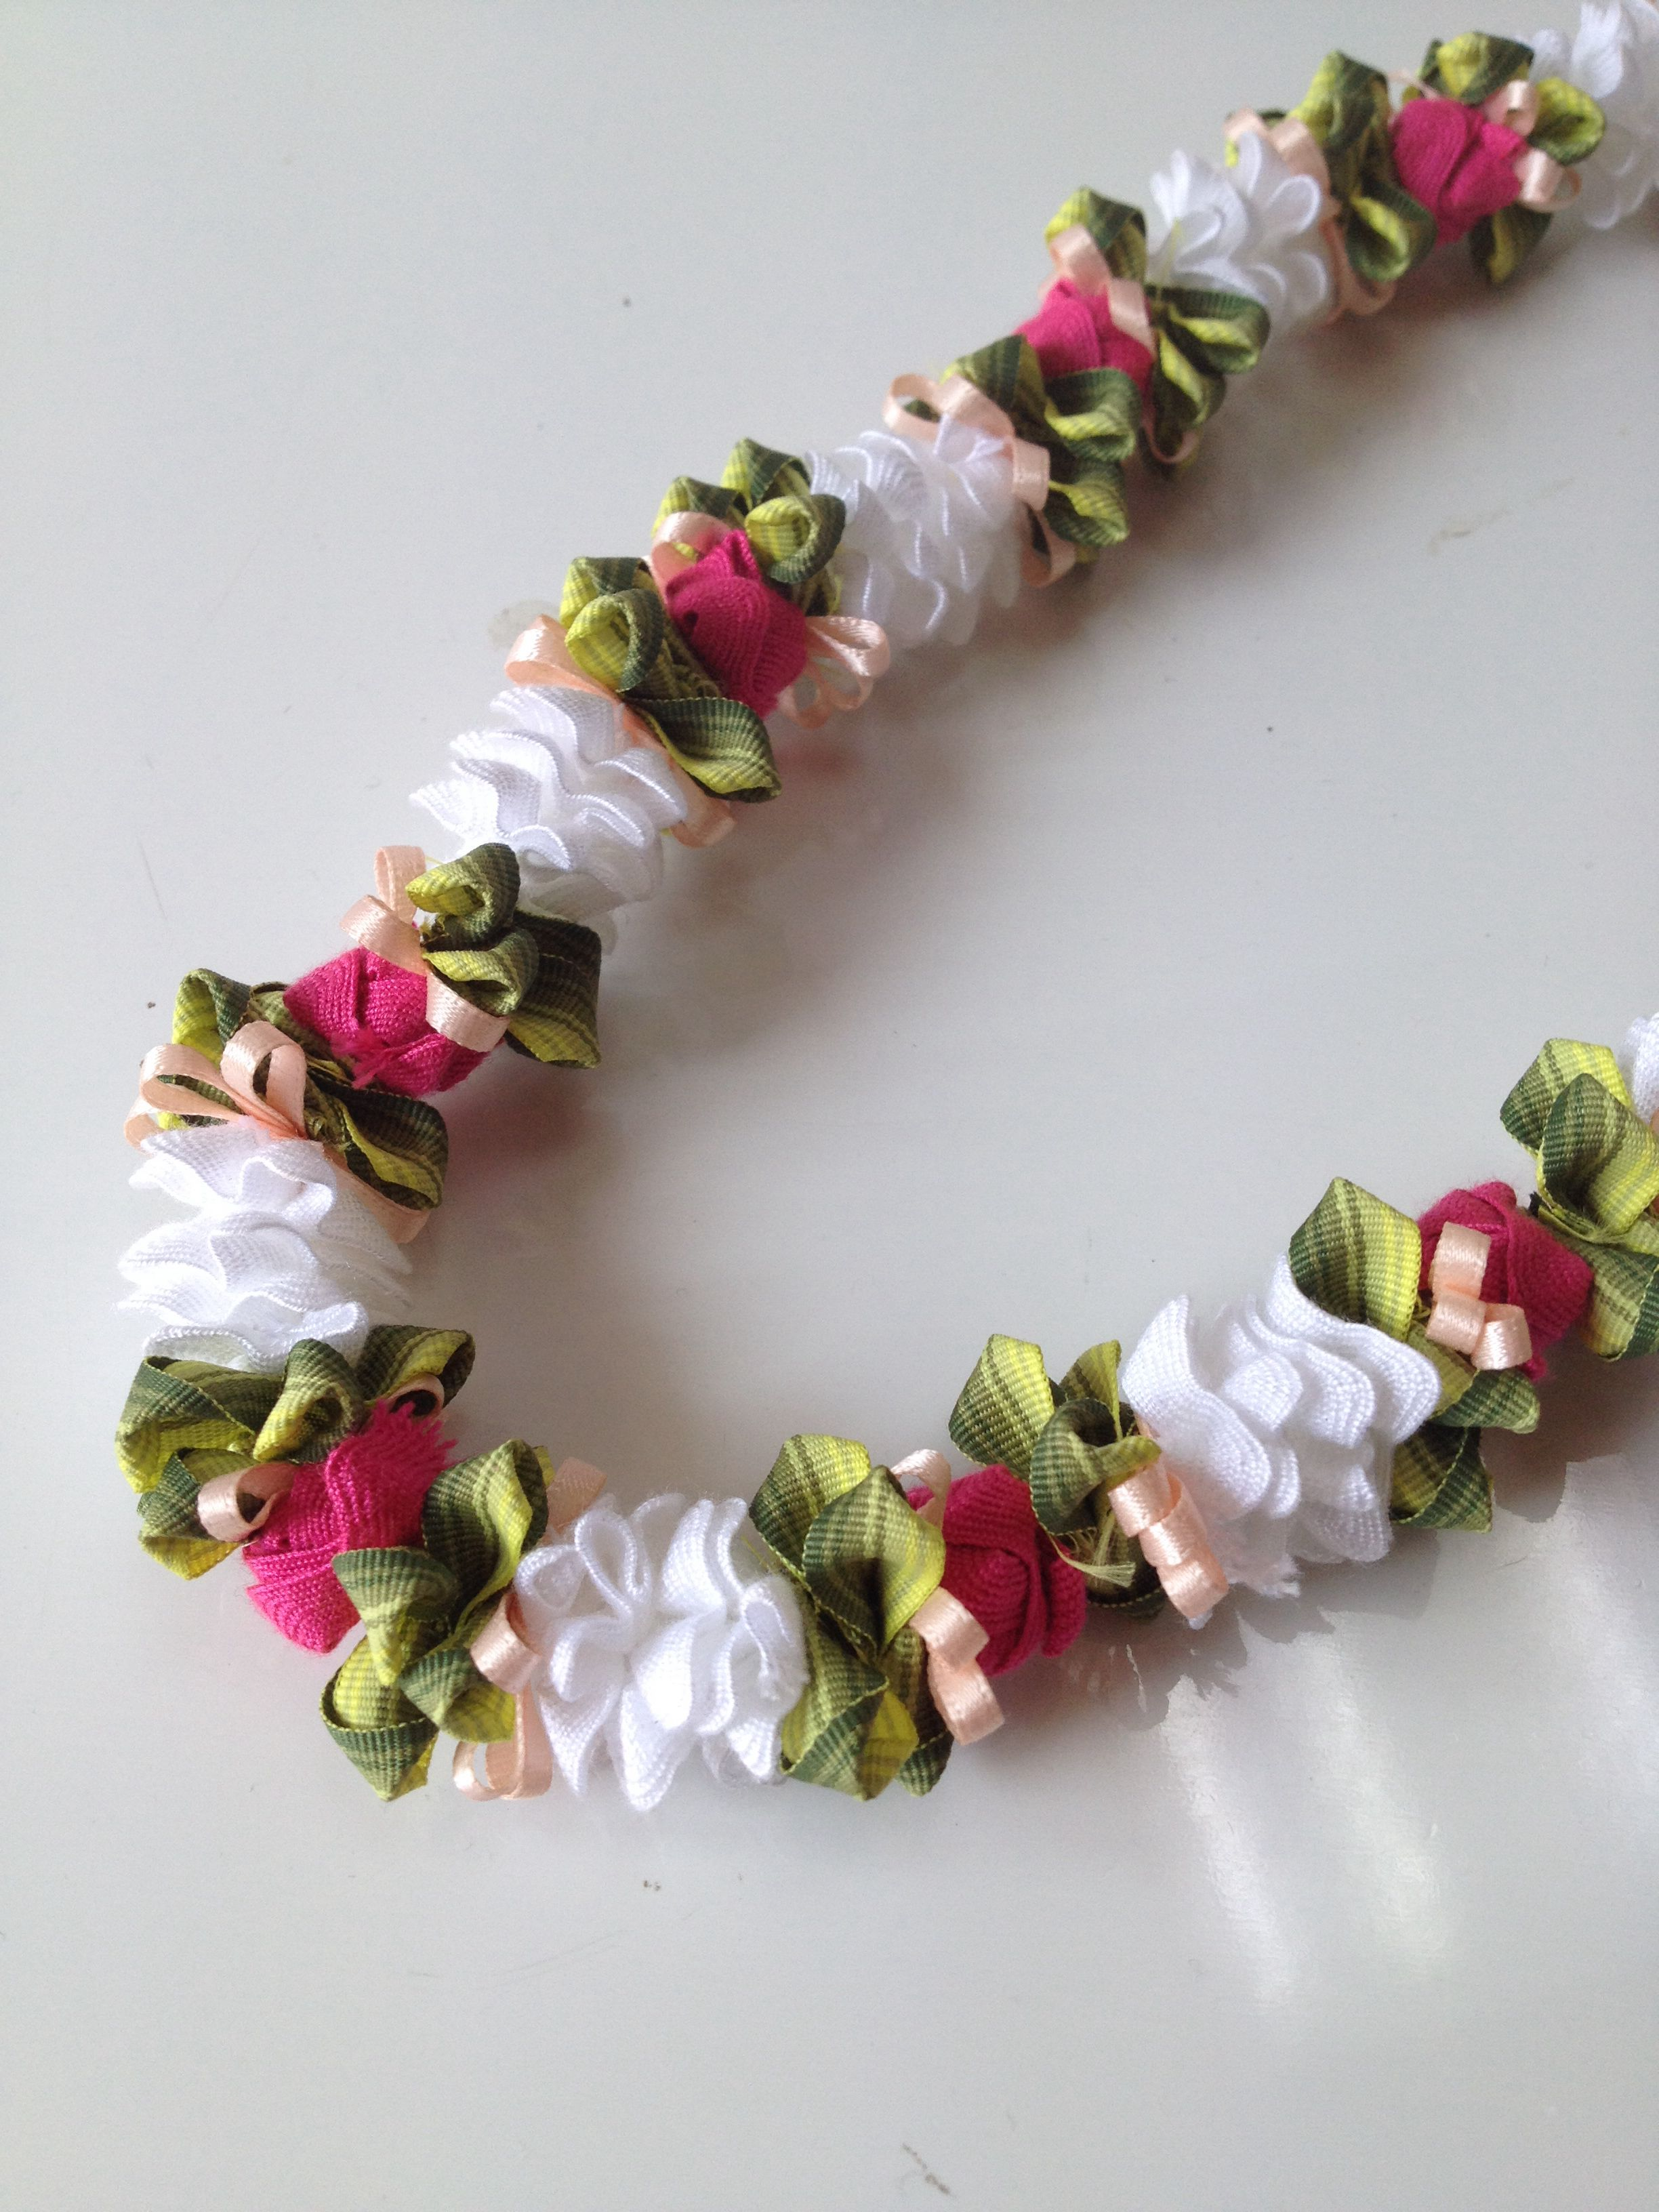 Tuberose with lokelani ribbon lei ribbon lei pinterest tuberose with lokelani ribbon lei izmirmasajfo